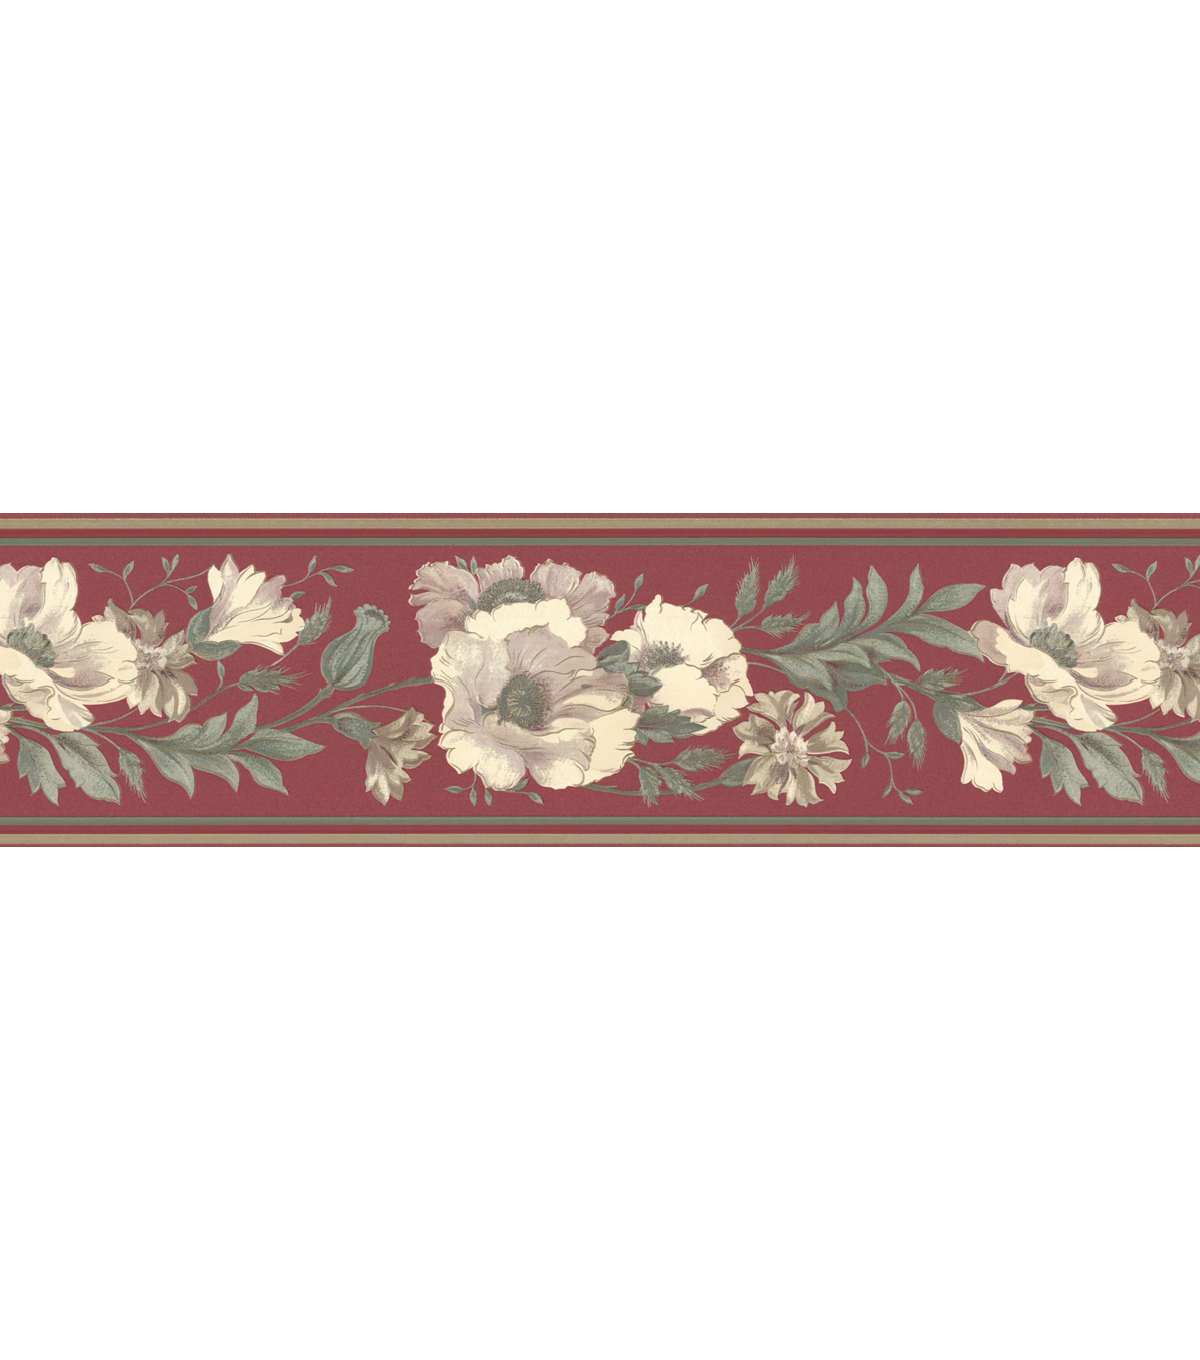 Floral Trail Wallpaper Border, Red Sample